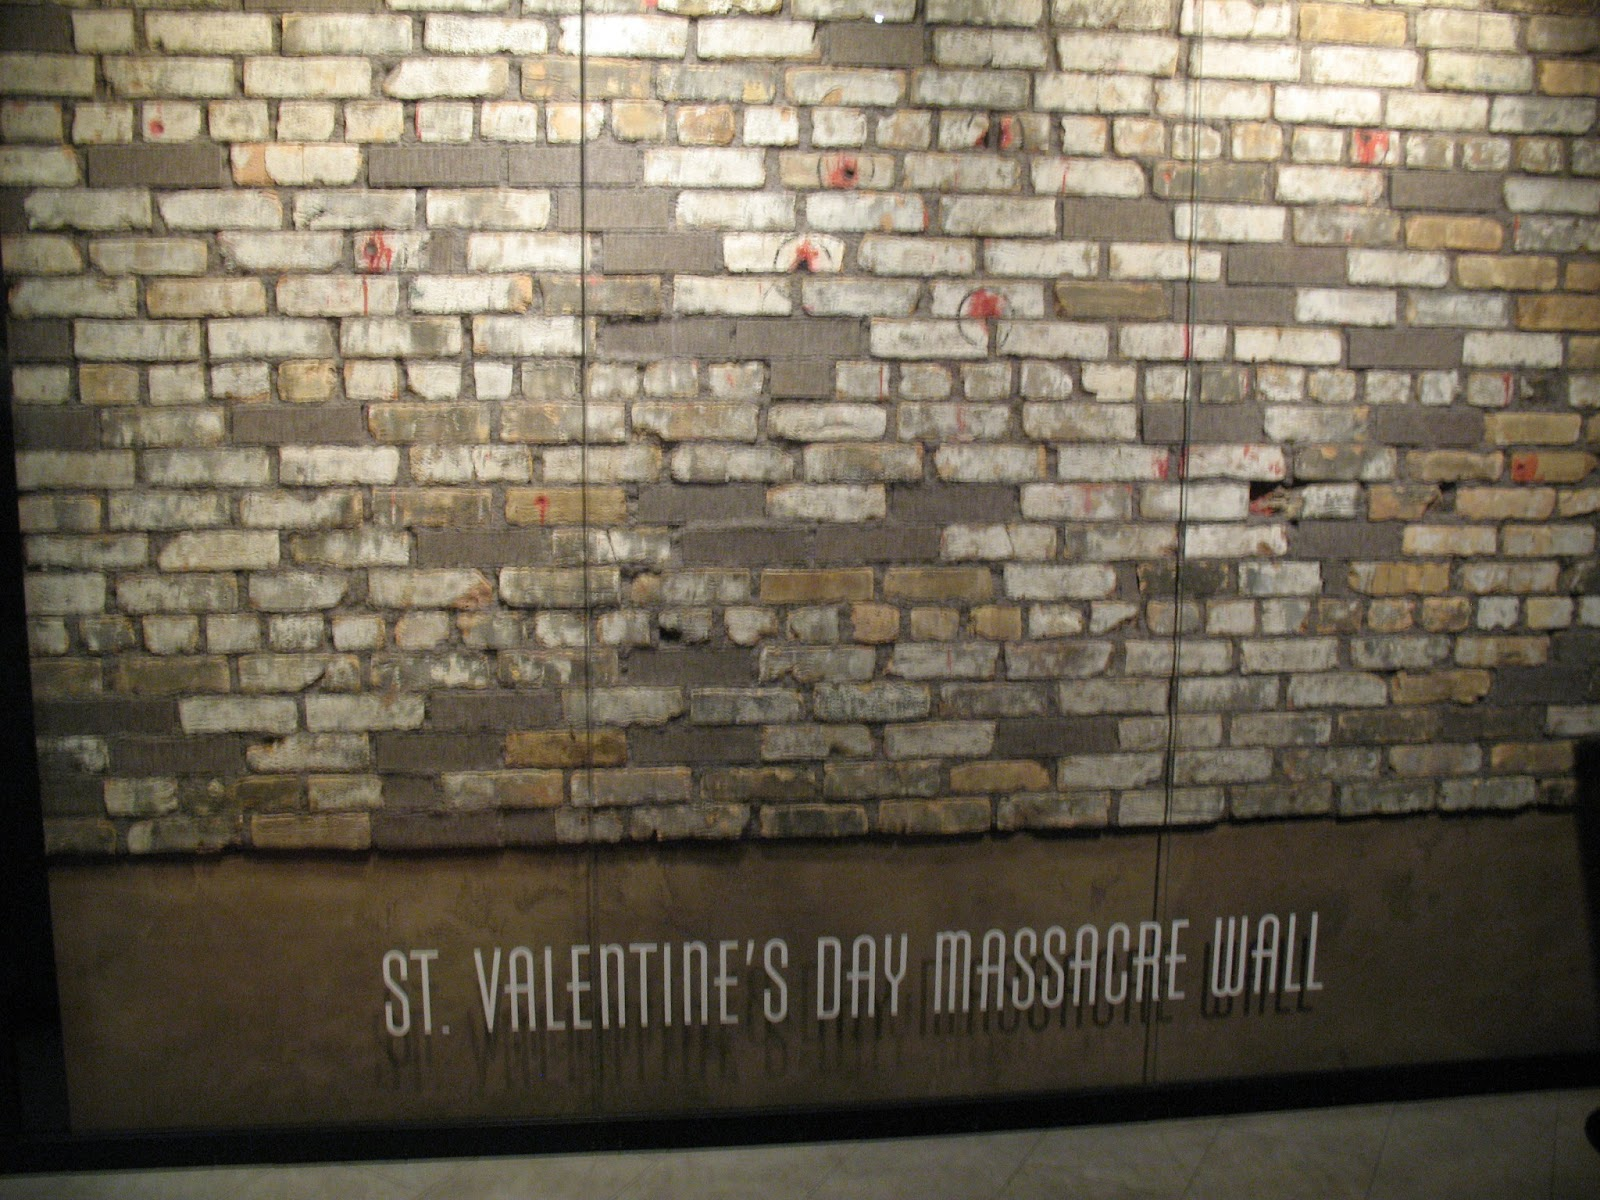 st valentines masacre essay The saint valentine's day massacre is the name given to the 1929 murder of seven mob associates as part of a prohibition-era conflict between two powerful.